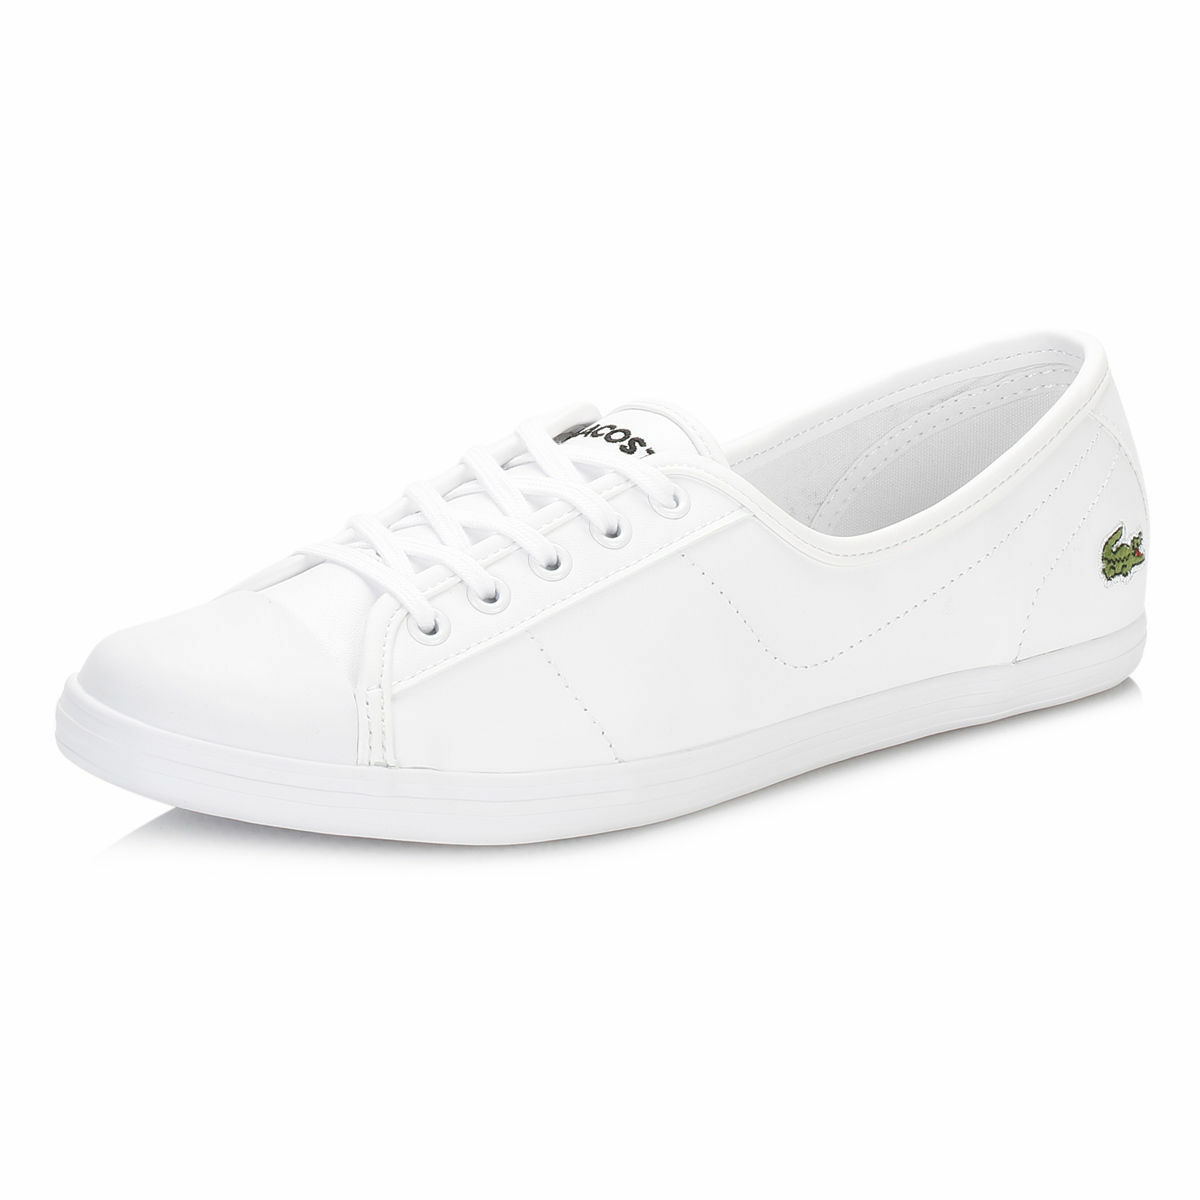 Lacoste Ziane BL Cuir Baskets Taille UK 7 NEW BOXED UE 40.5 Blanc Escarpins Femmes